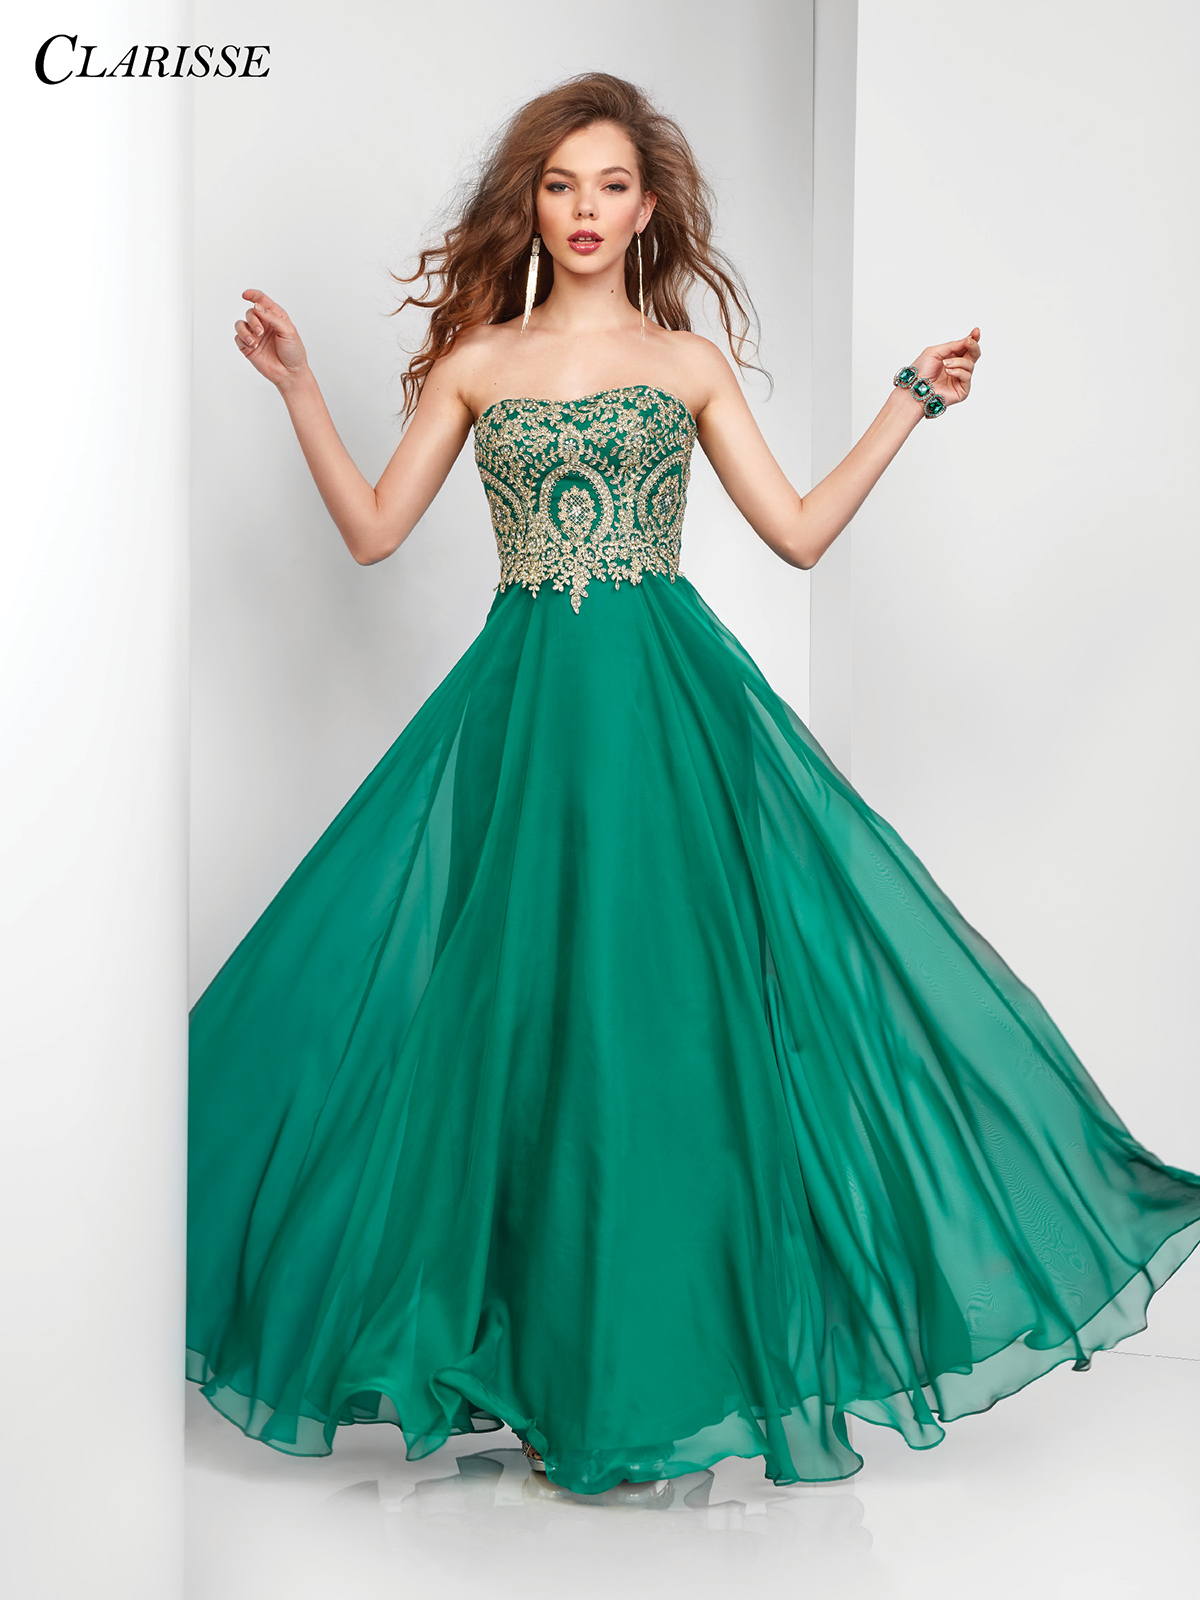 Clarisse Prom Dress 3000 | Promgirl.net